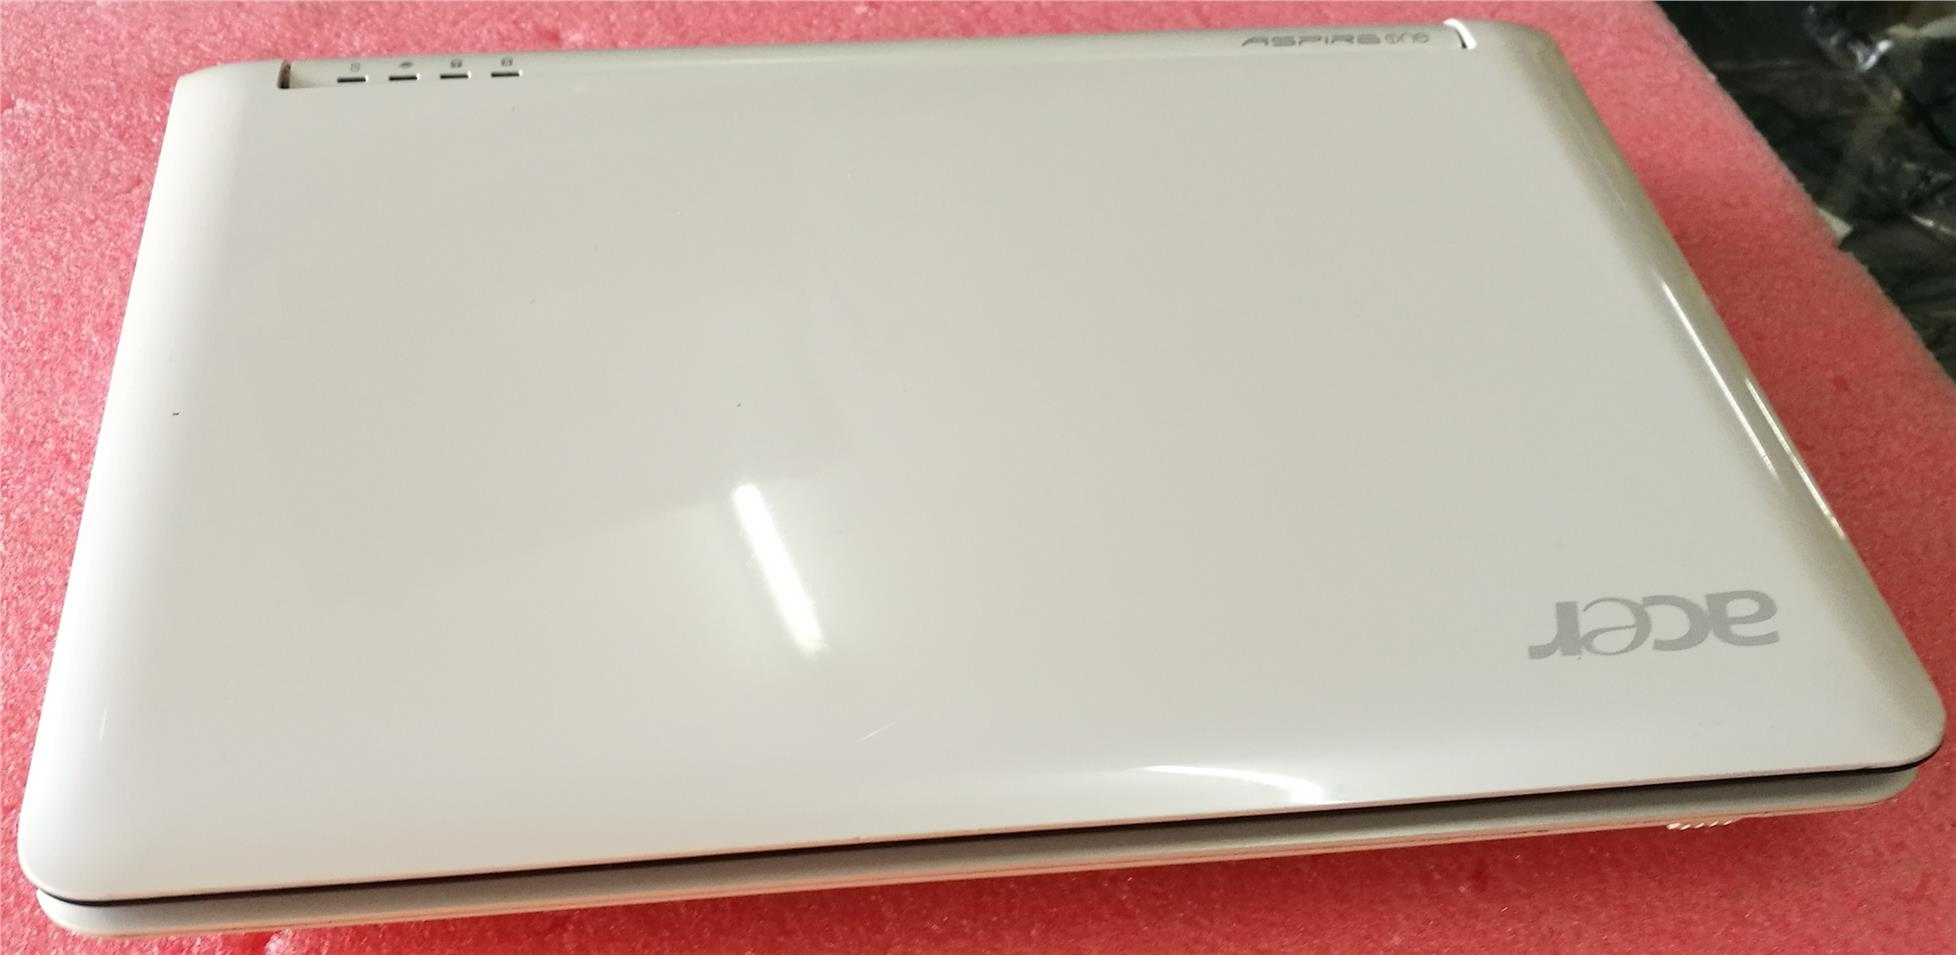 Acer Aspire One ZG5 PEARL WHITE COL End 2 22 2018 115 PM